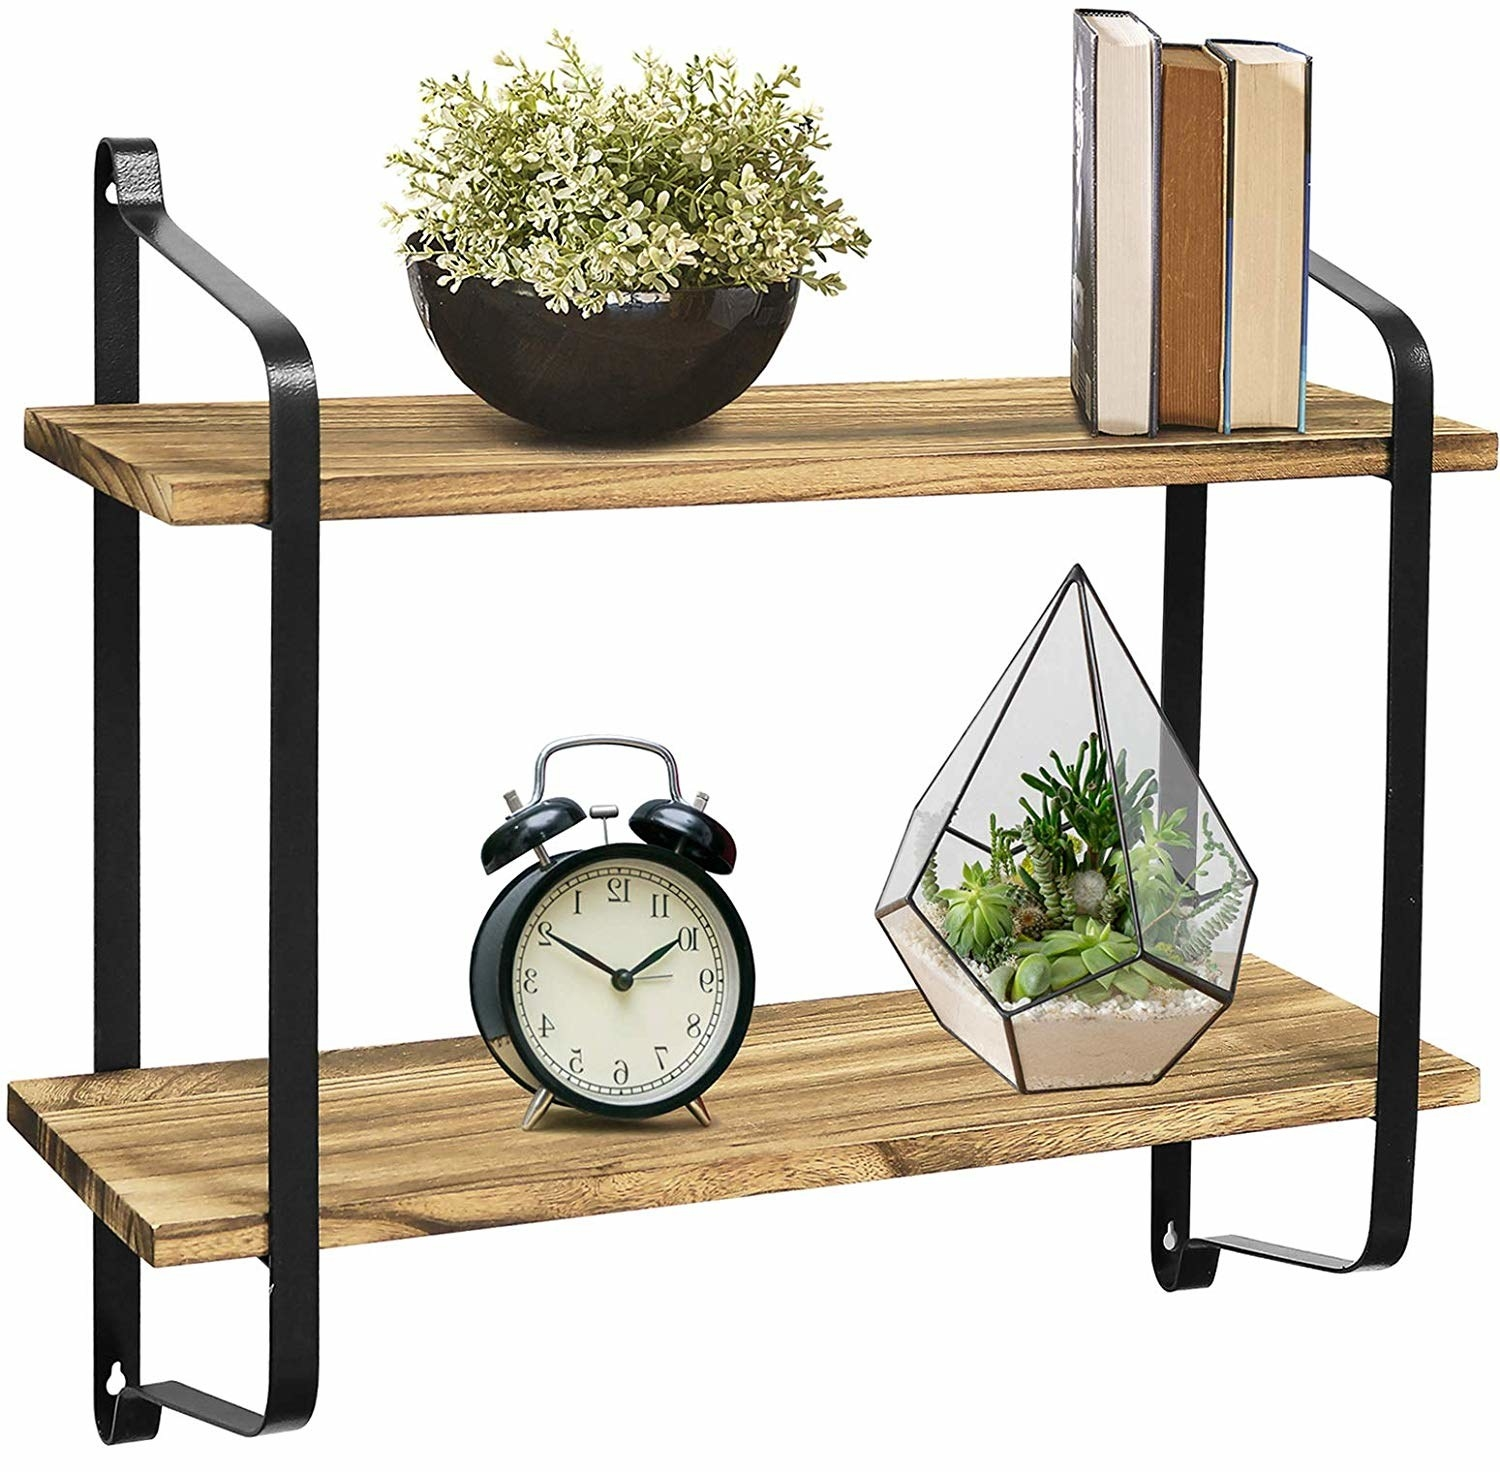 The wall shelf with objects propped on it